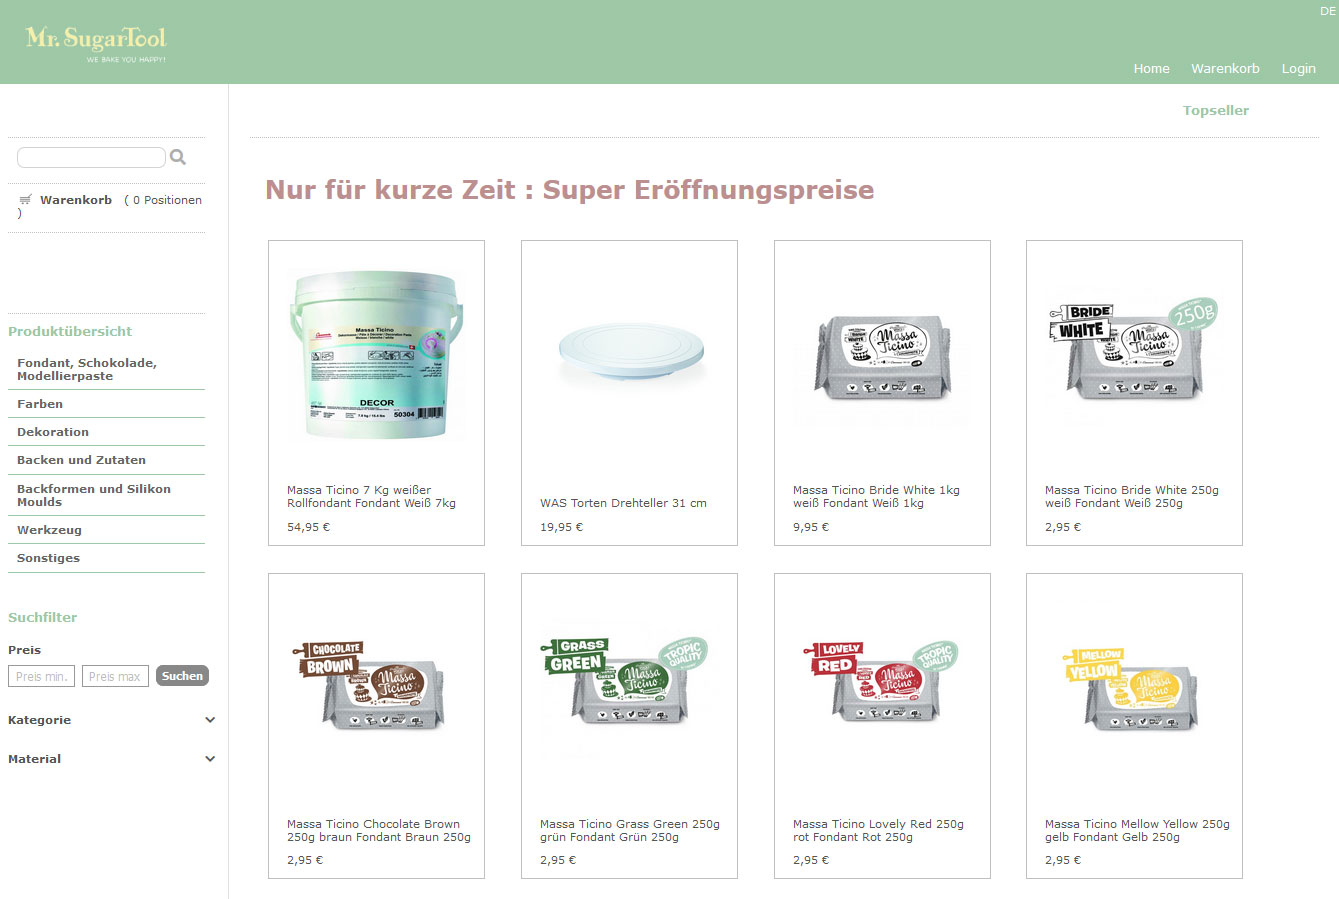 Mr.Sugartool Webshop